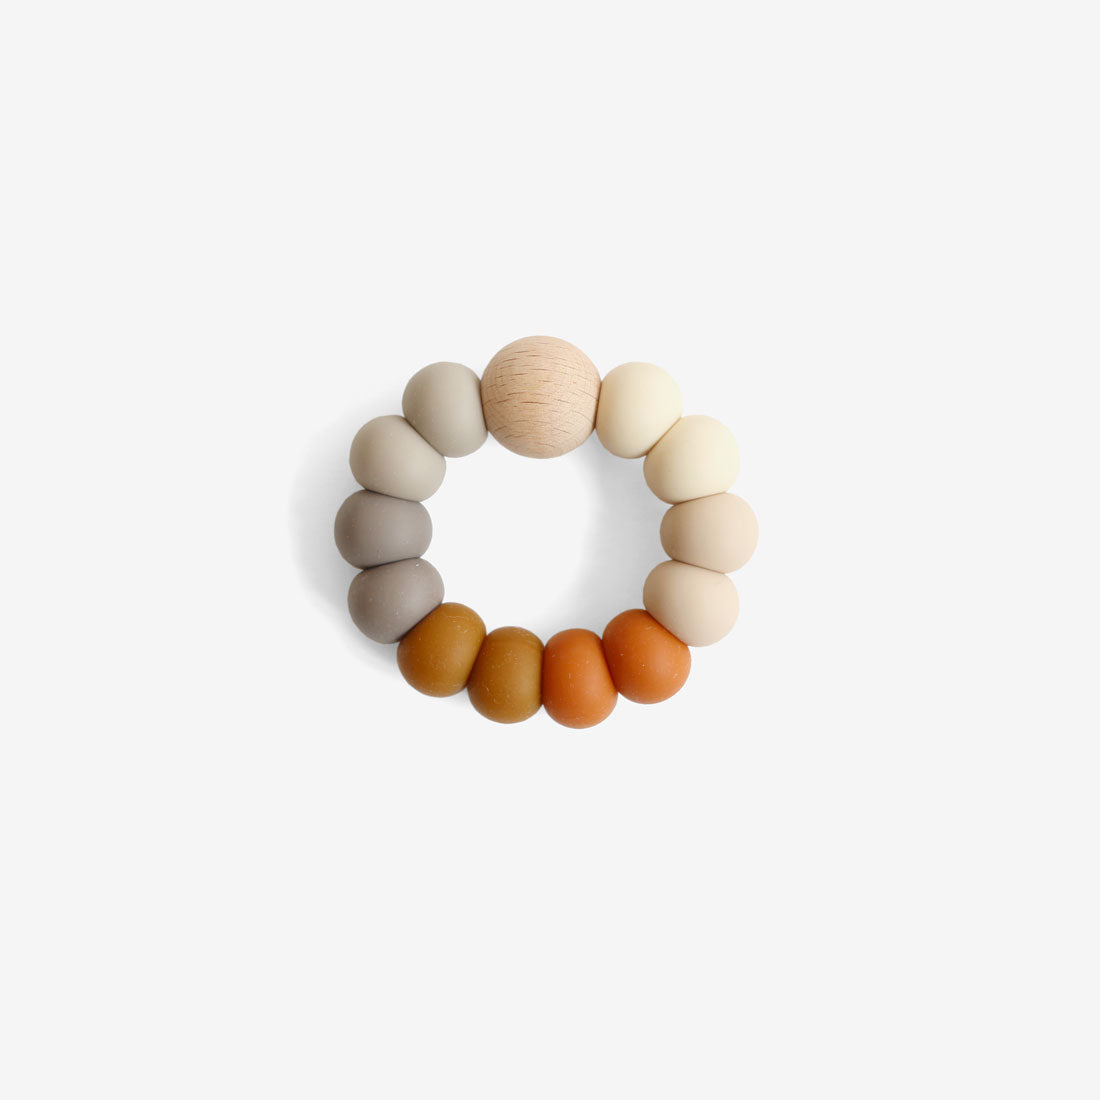 Silicone Bead Teether Toy - Spice